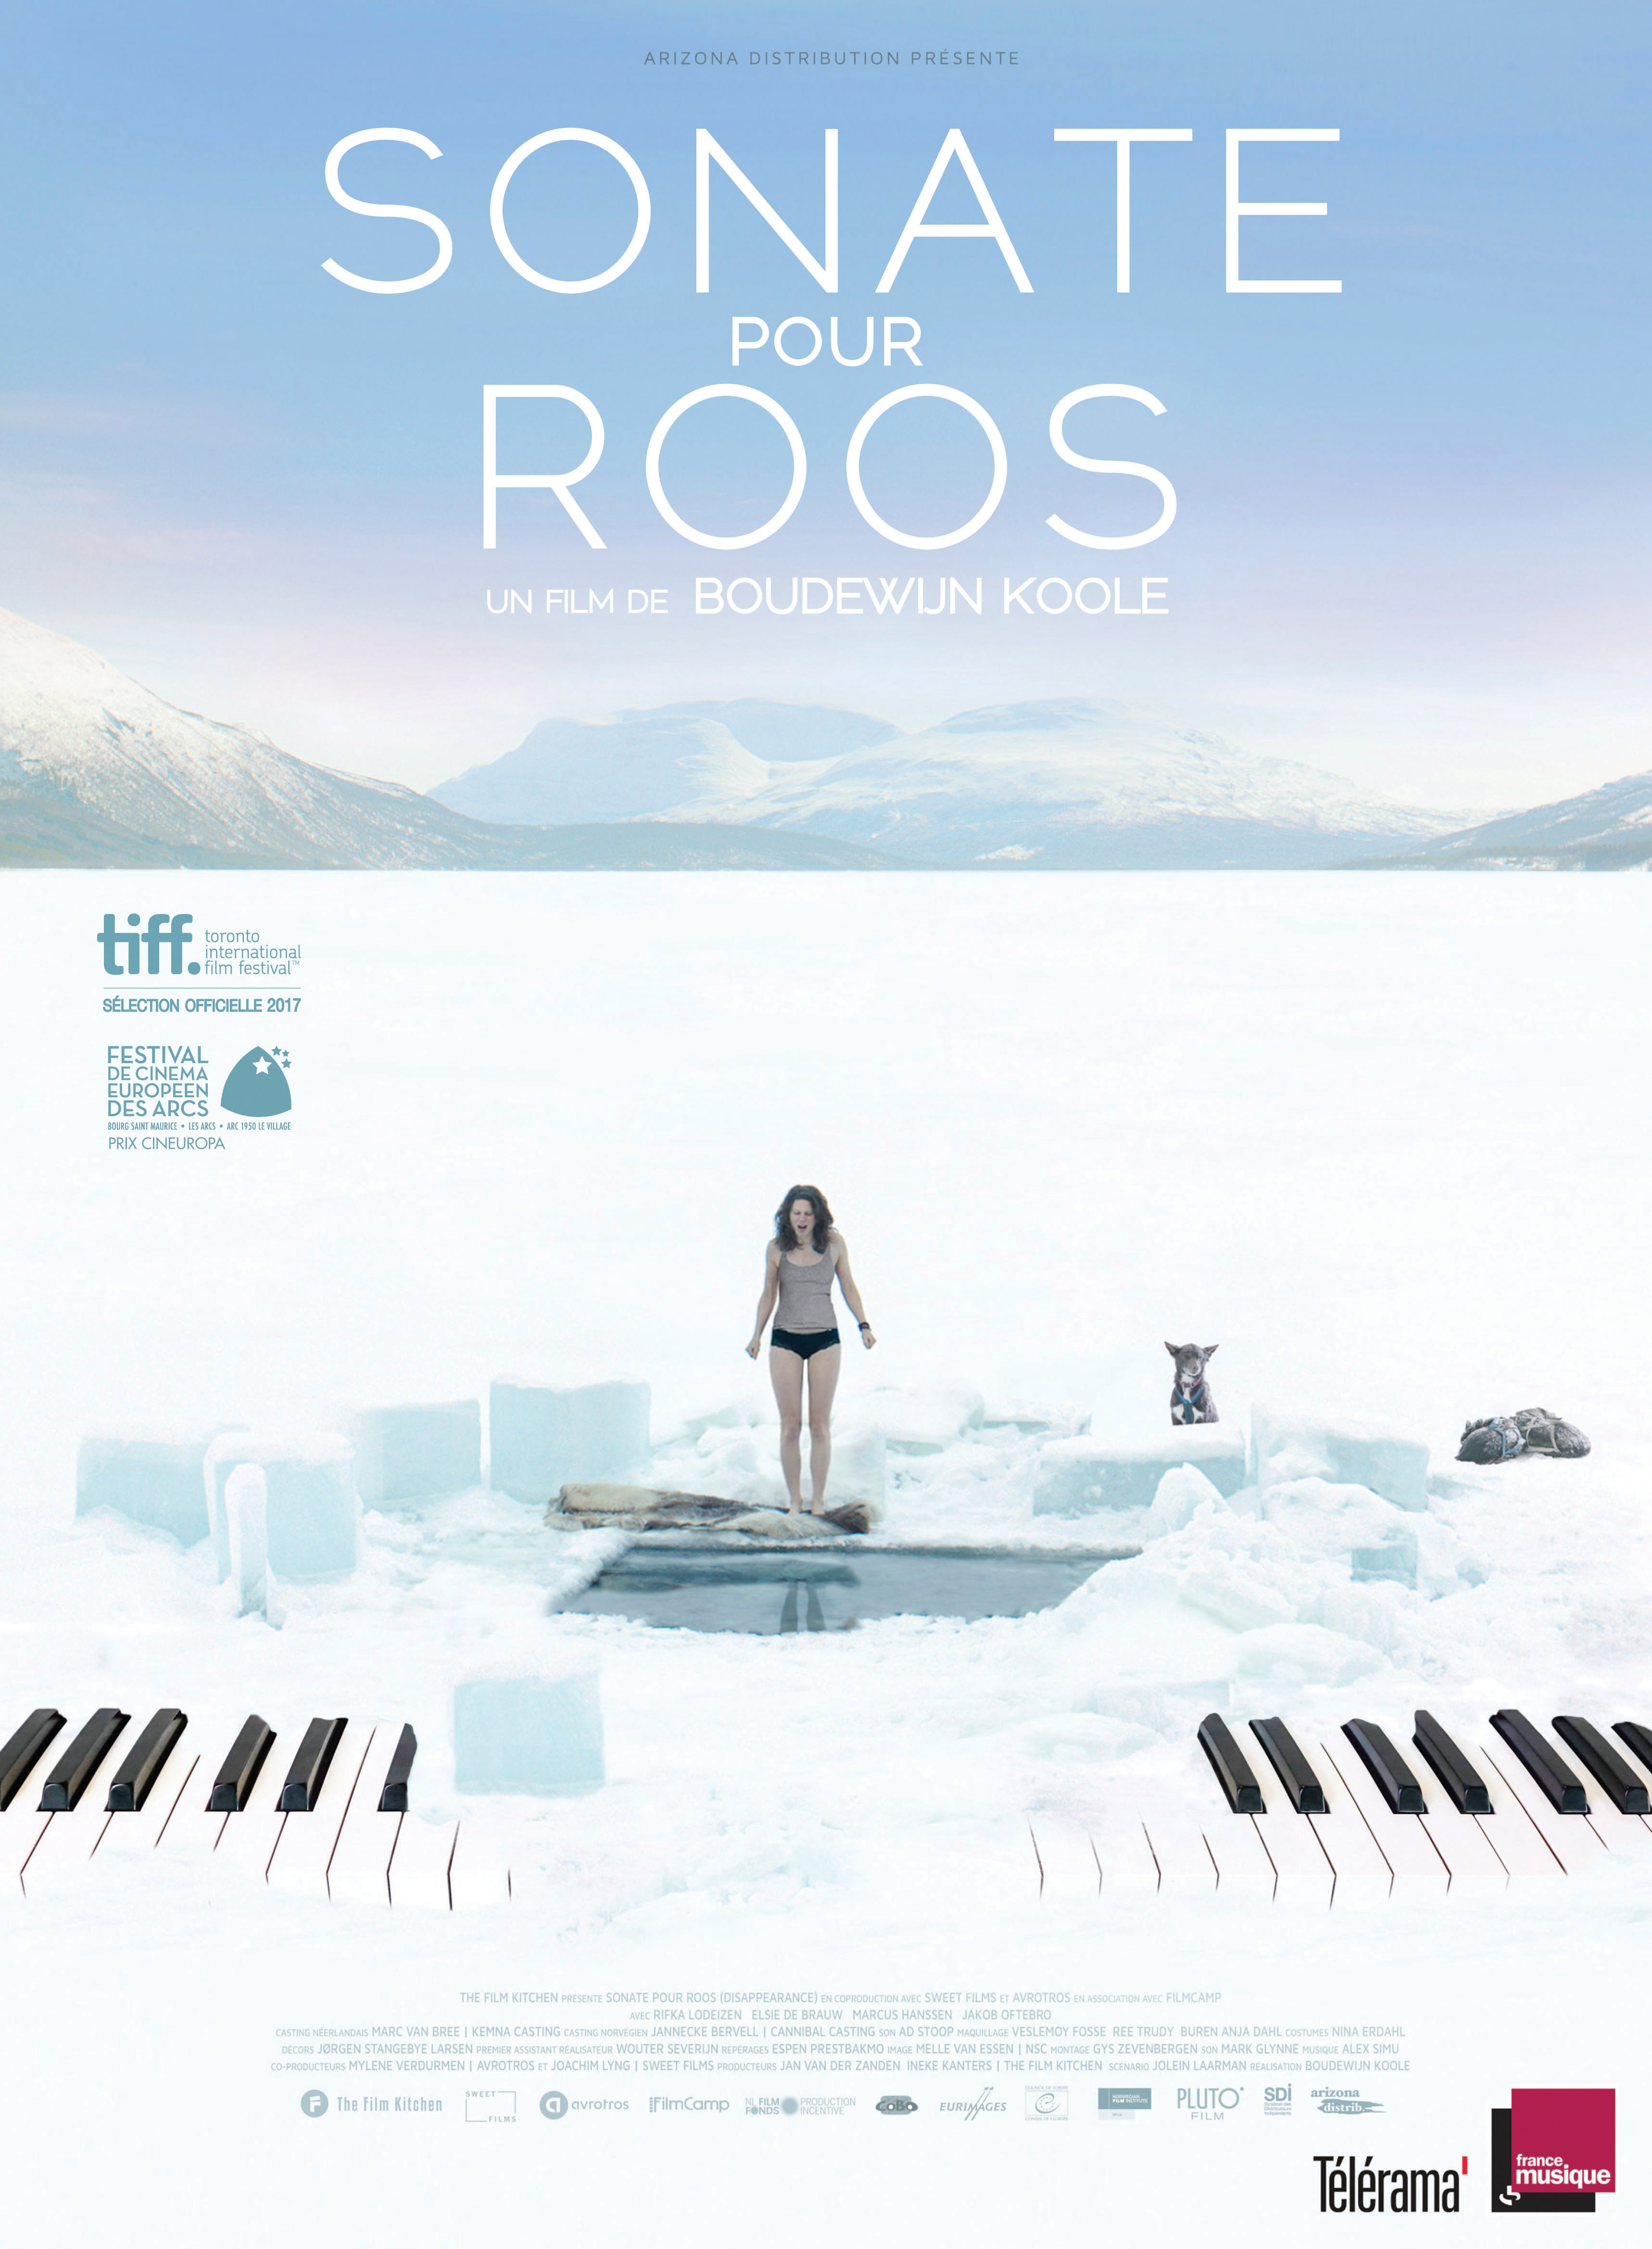 Sonate pour Roos